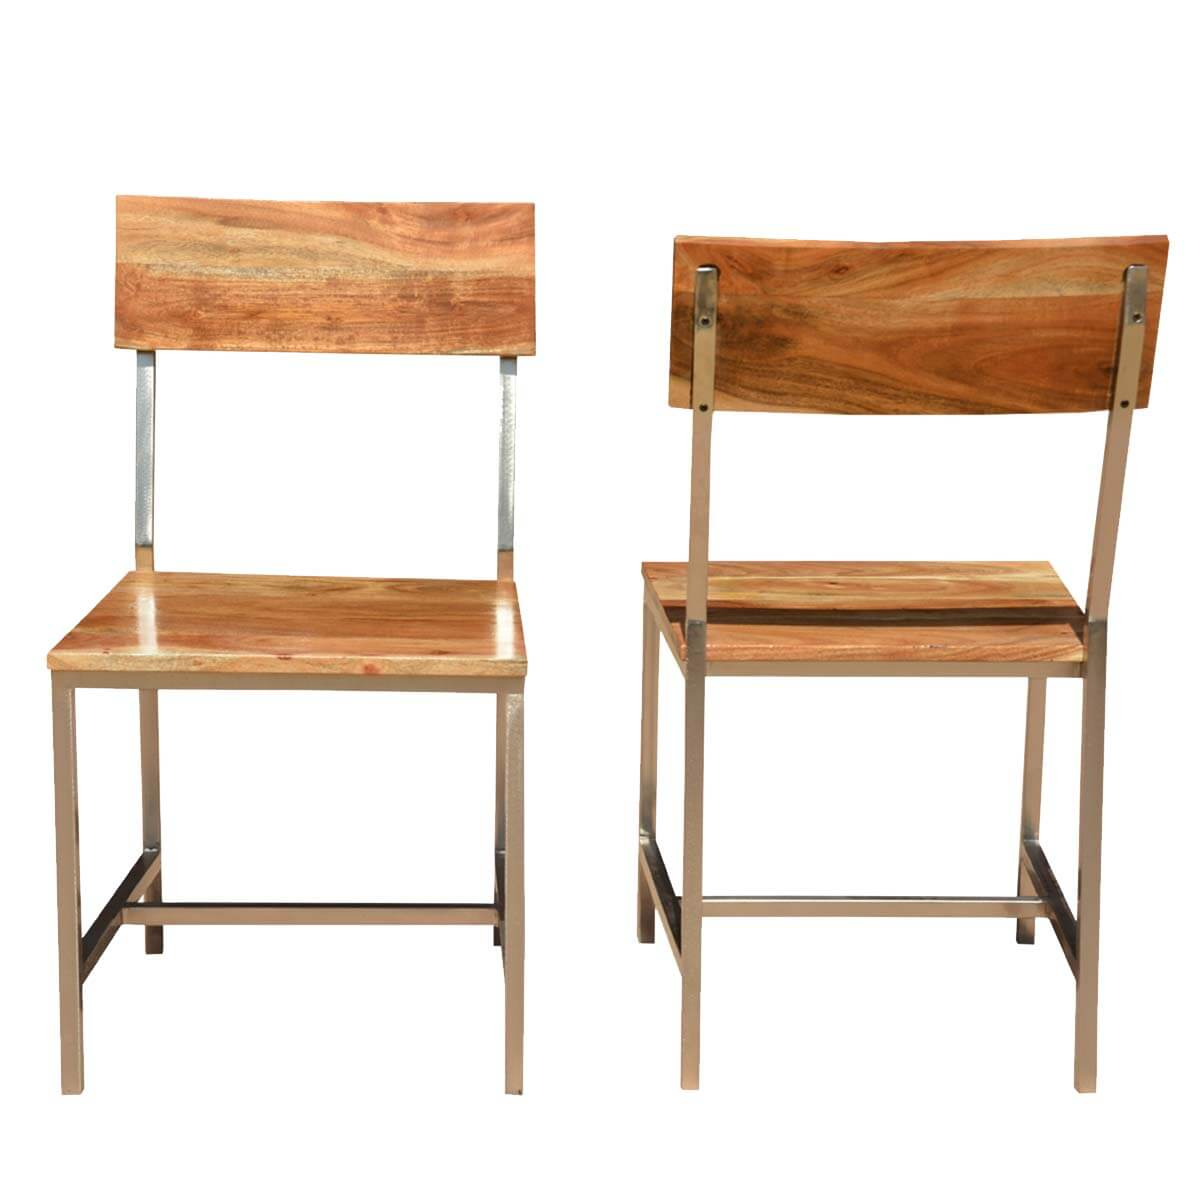 Marvelous photograph of  Rustic Furniture Solid Wood & Iron Rustic Dining Chair (Set Of 2 with #B48317 color and 1200x1200 pixels